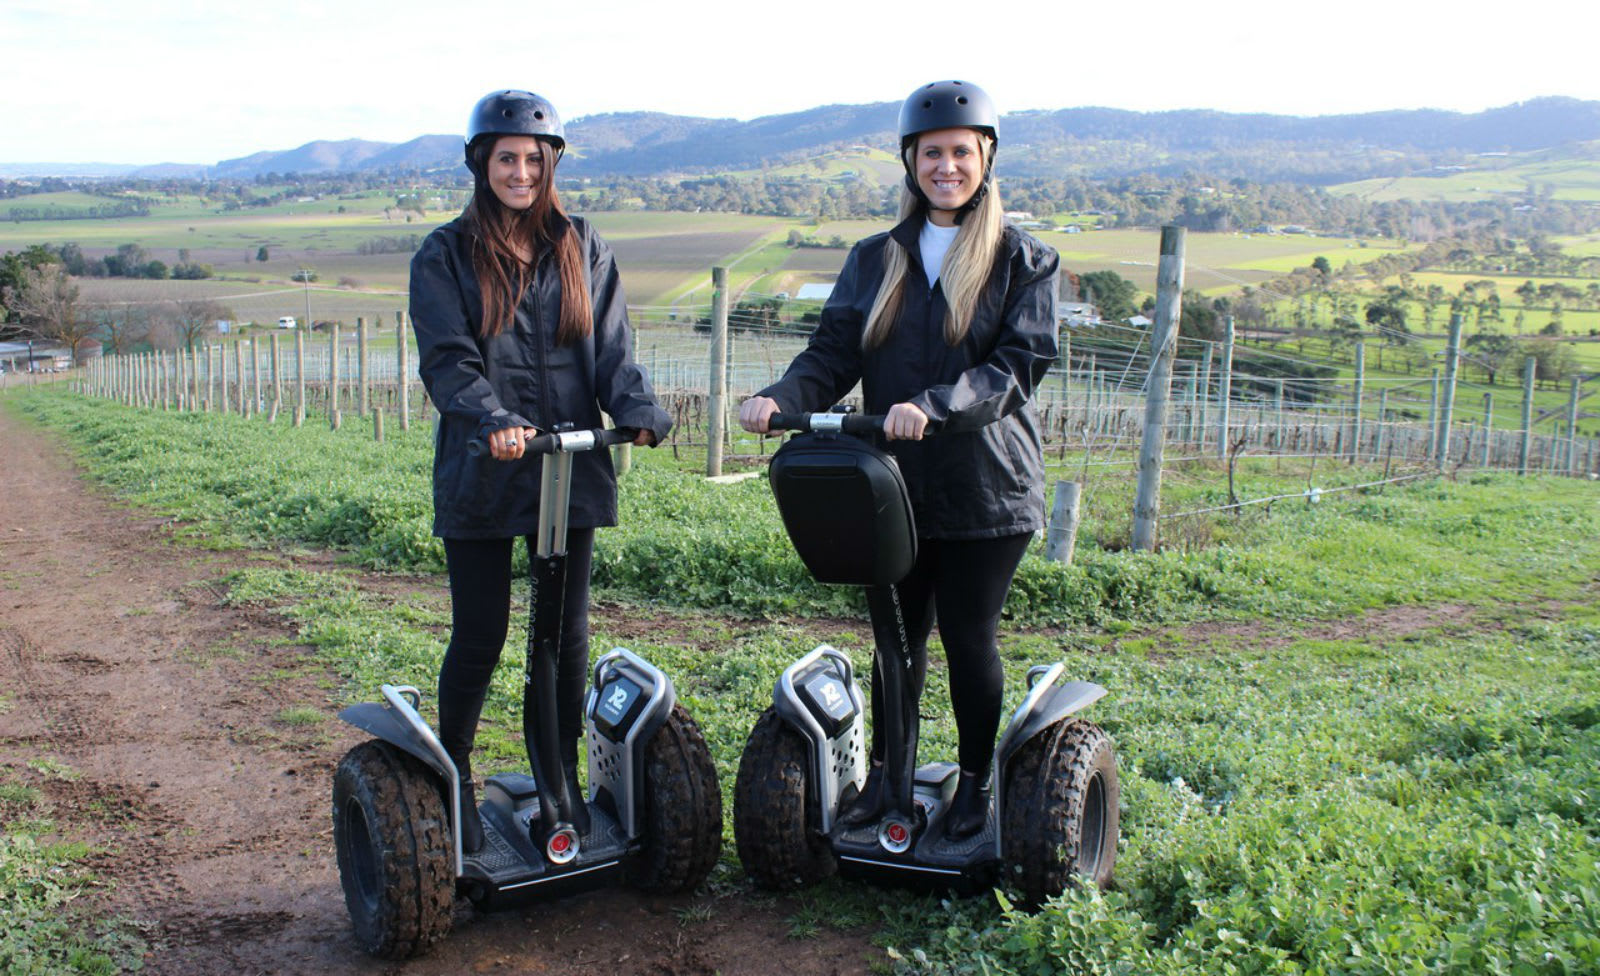 Balgownie Segway tour with Lunch